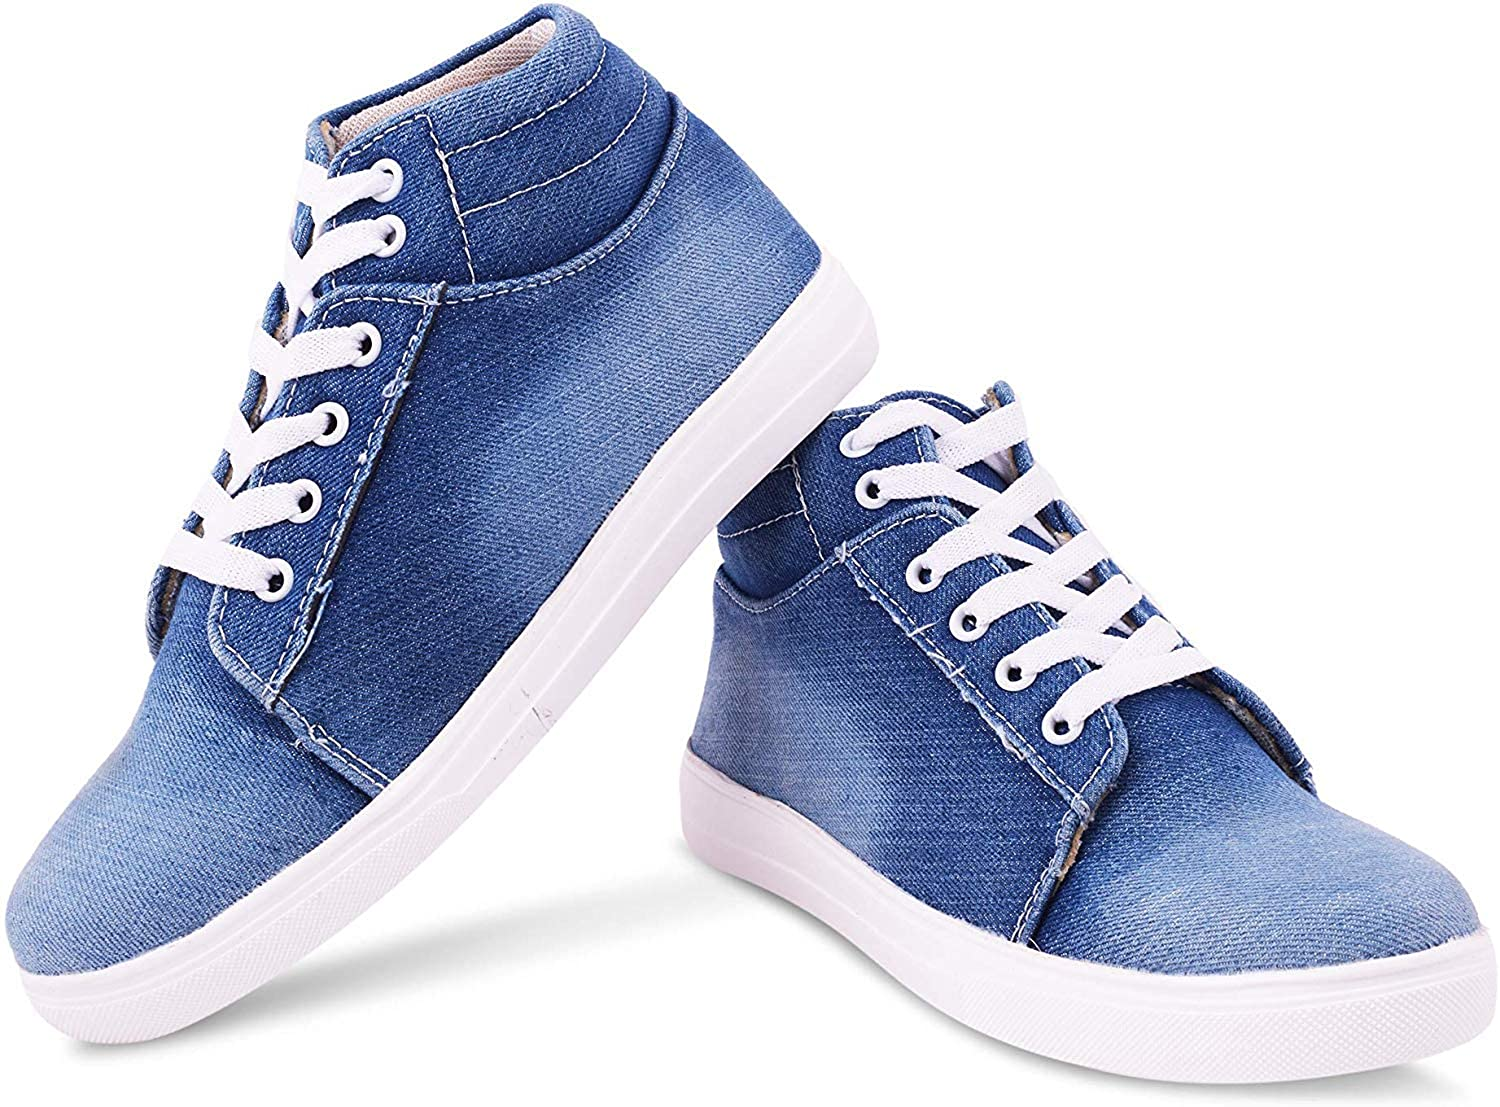 Buy Fashion Feet Casual Denim Sneakers Shoes for Women & Girls at Amazon.in